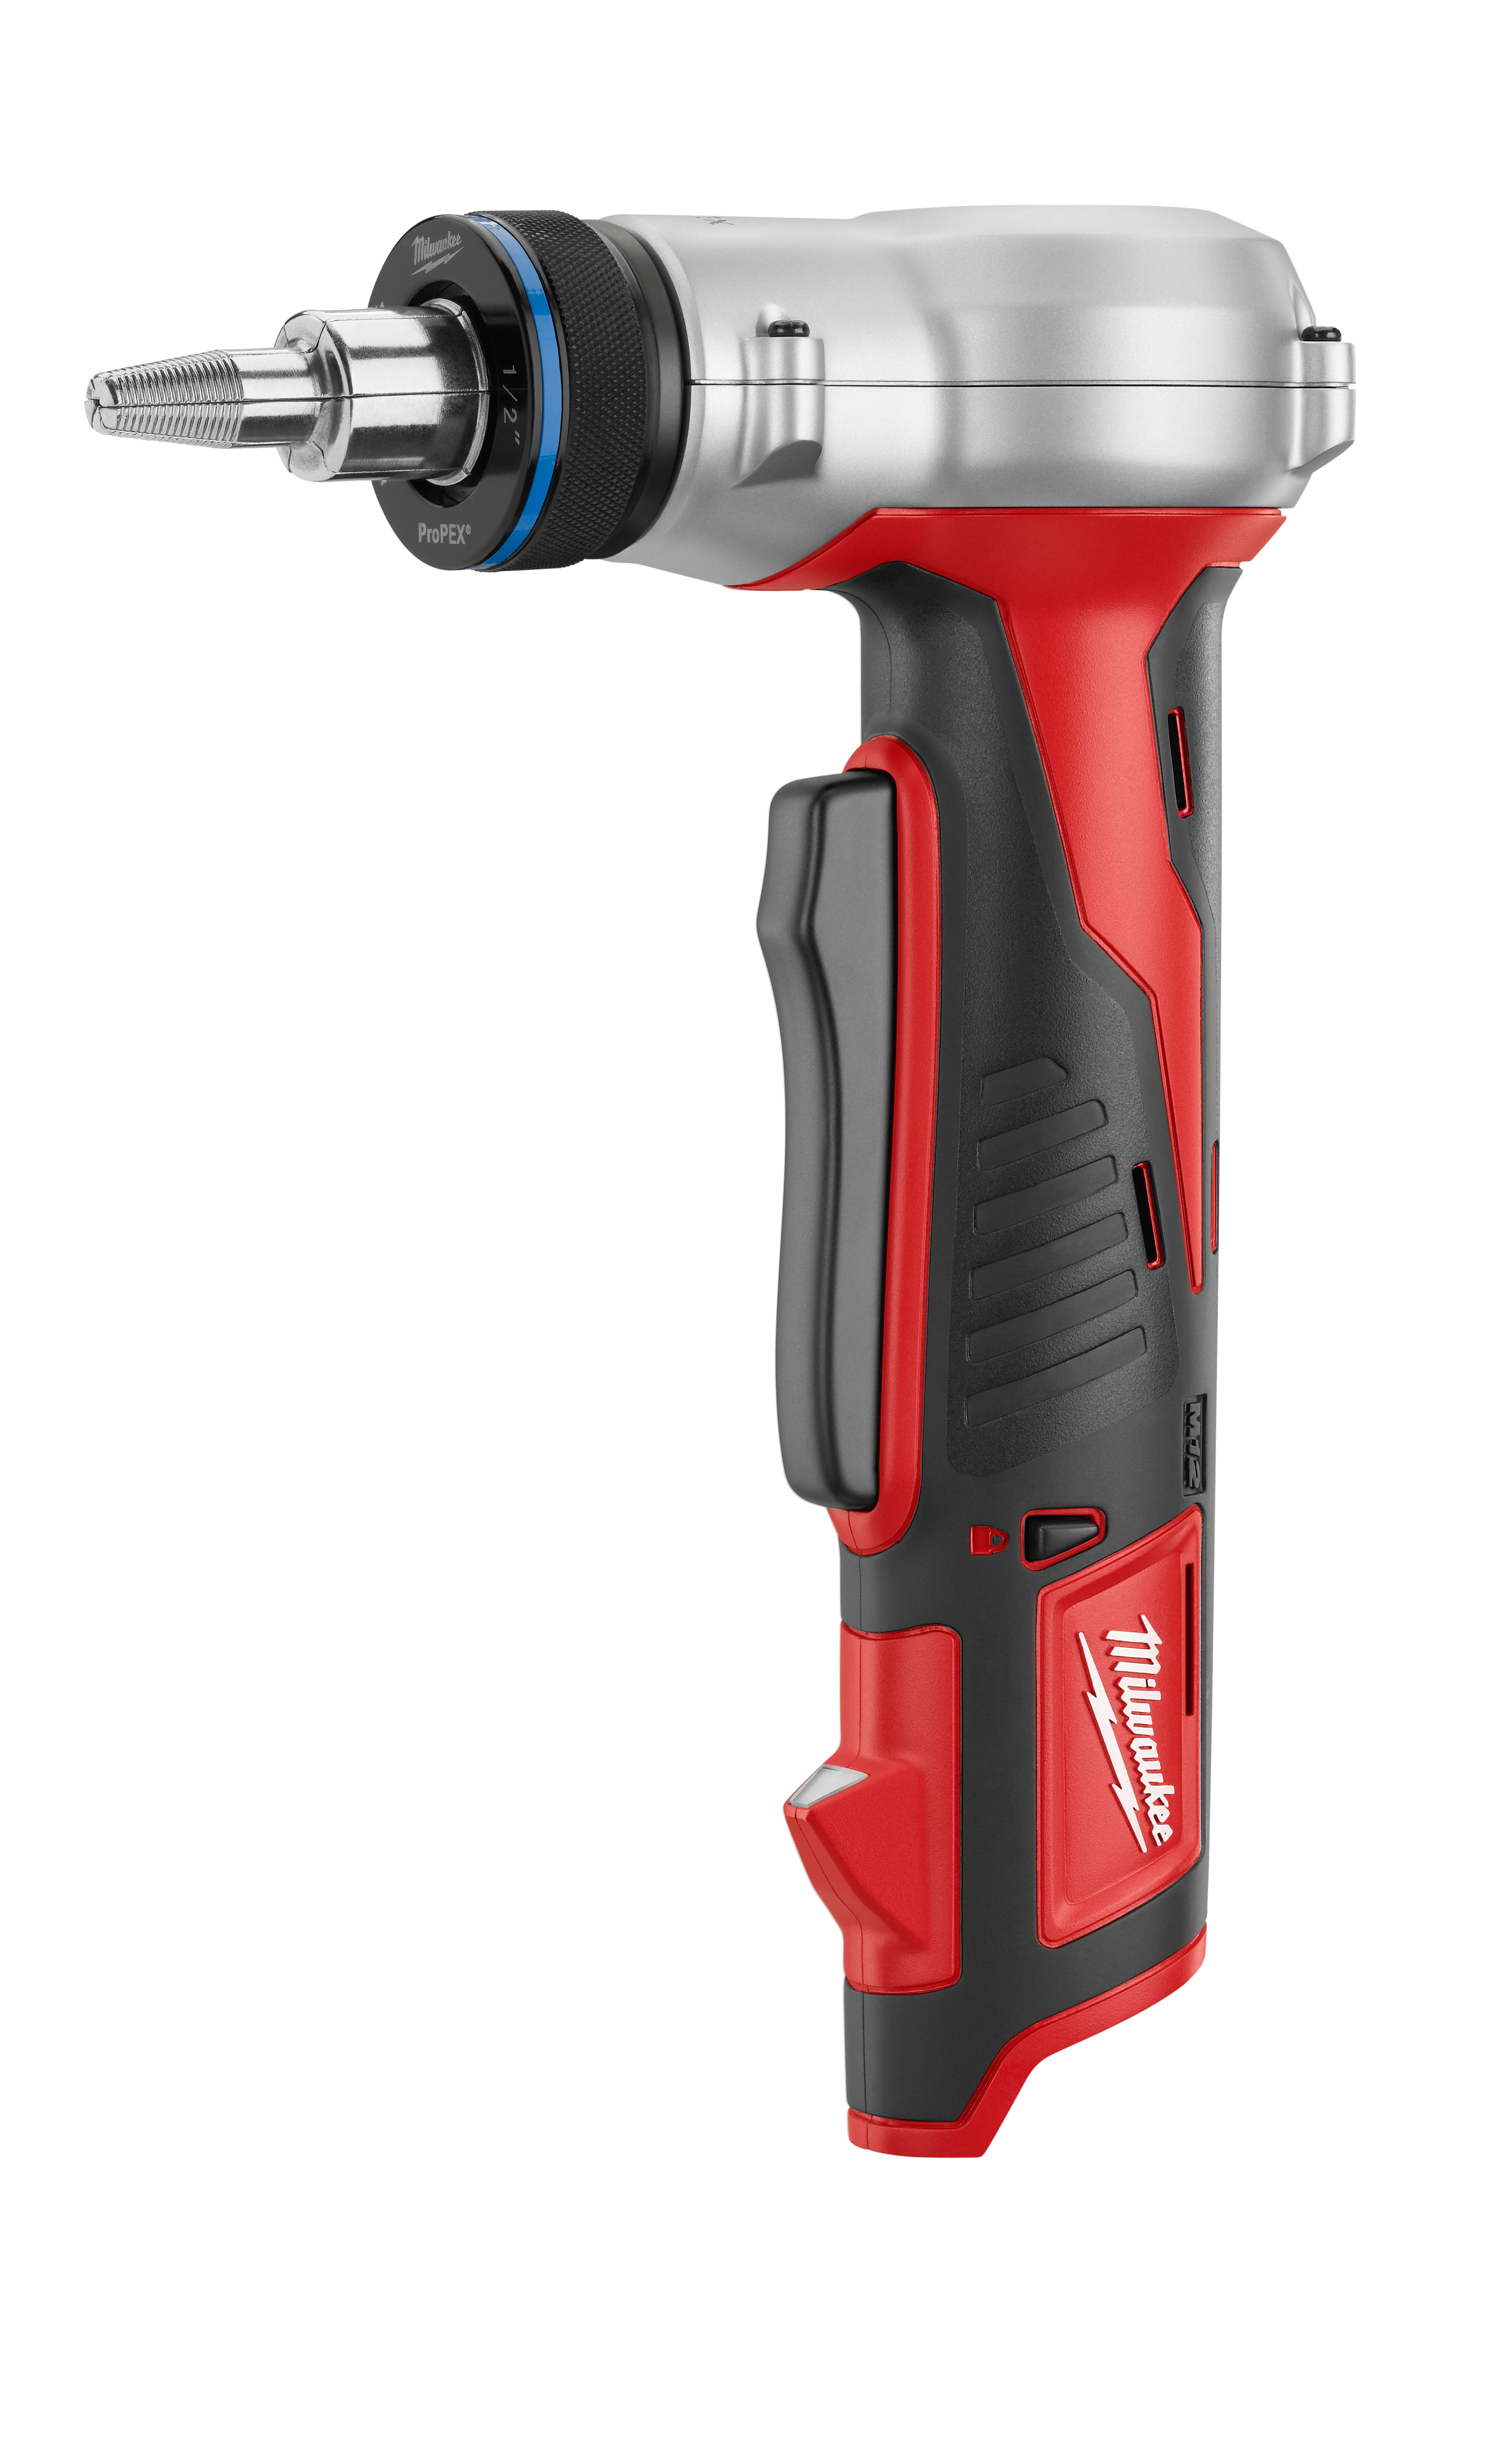 Milwaukee® ProPEX® M12™ 2432-20 Compact Cordless Expansion Tool, 3/8 to 1 in Tubing, 12 VDC, Lithium-Ion Battery